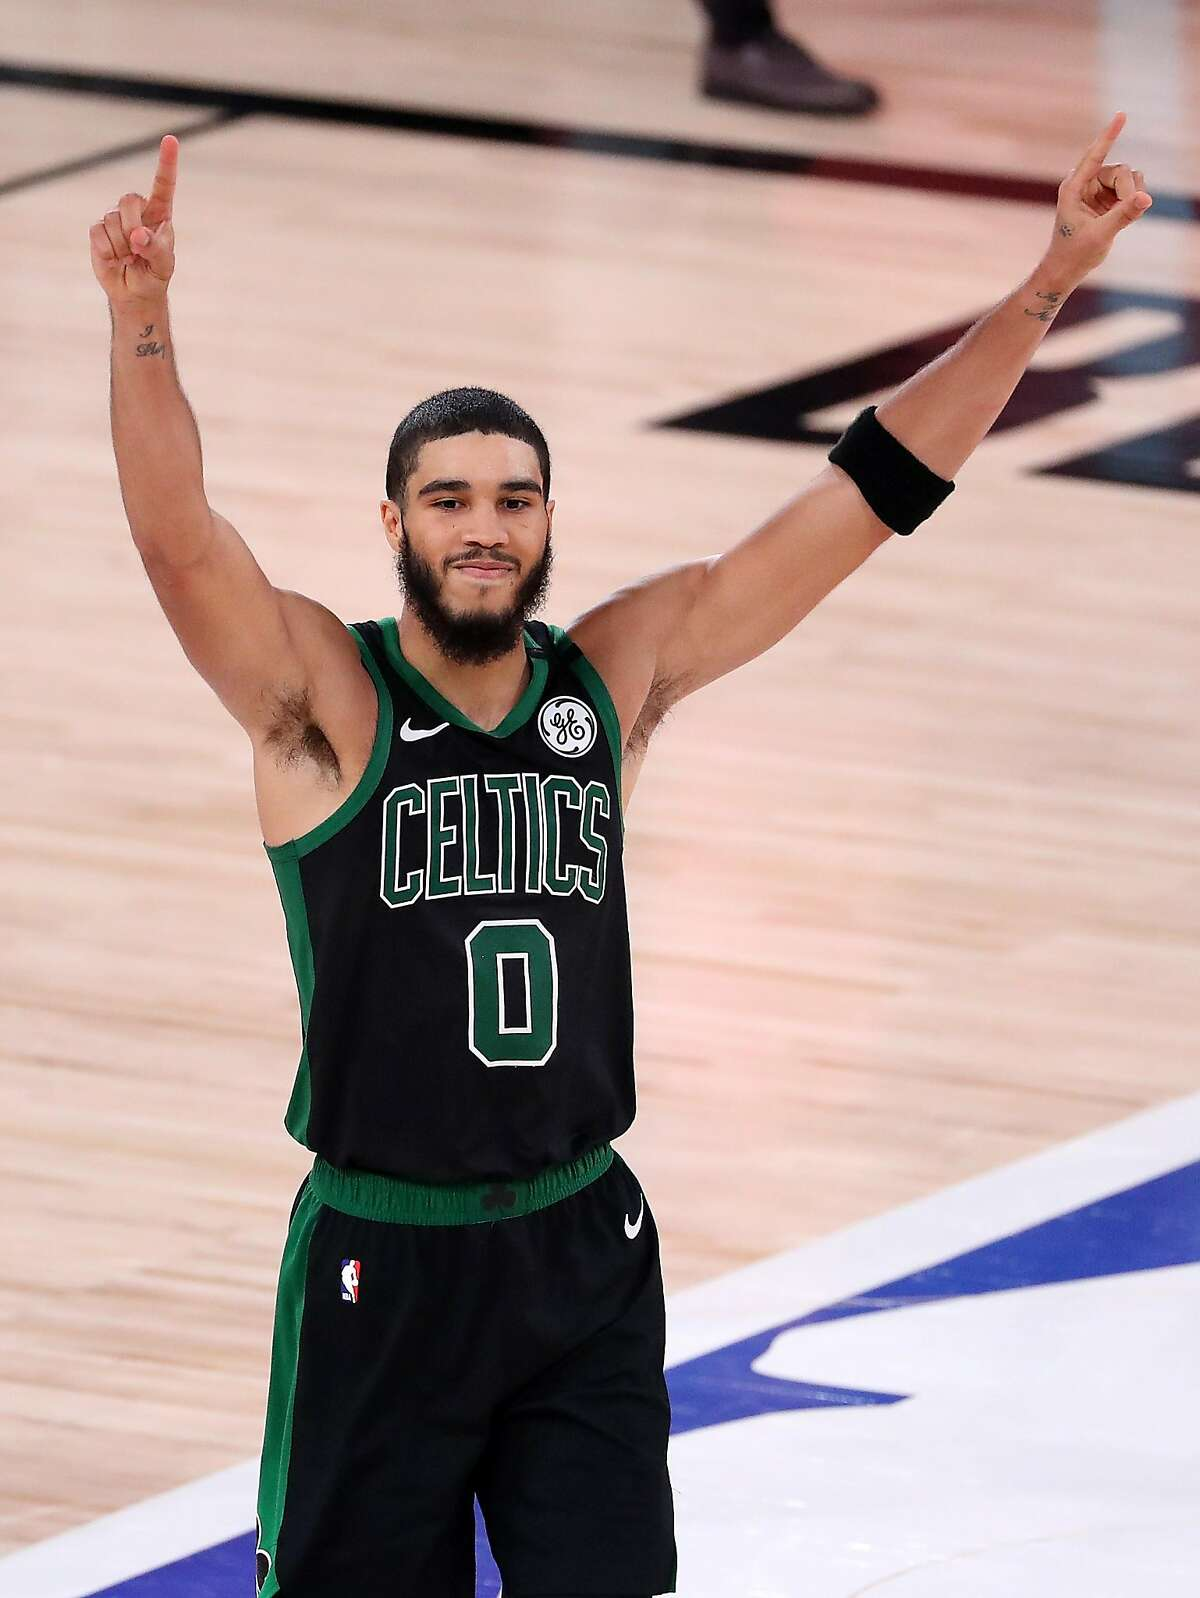 LAKE BUENA VISTA, FLORIDA - SEPTEMBER 11: Jayson Tatum #0 of the Boston Celtics reacts after their win against the Toronto Raptors in Game Seven of the Eastern Conference Second Round during the 2020 NBA Playoffs at AdventHealth Arena at the ESPN Wide World Of Sports Complex on September 11, 2020 in Lake Buena Vista, Florida. NOTE TO USER: User expressly acknowledges and agrees that, by downloading and or using this photograph, User is consenting to the terms and conditions of the Getty Images License Agreement. (Photo by Michael Reaves/Getty Images)